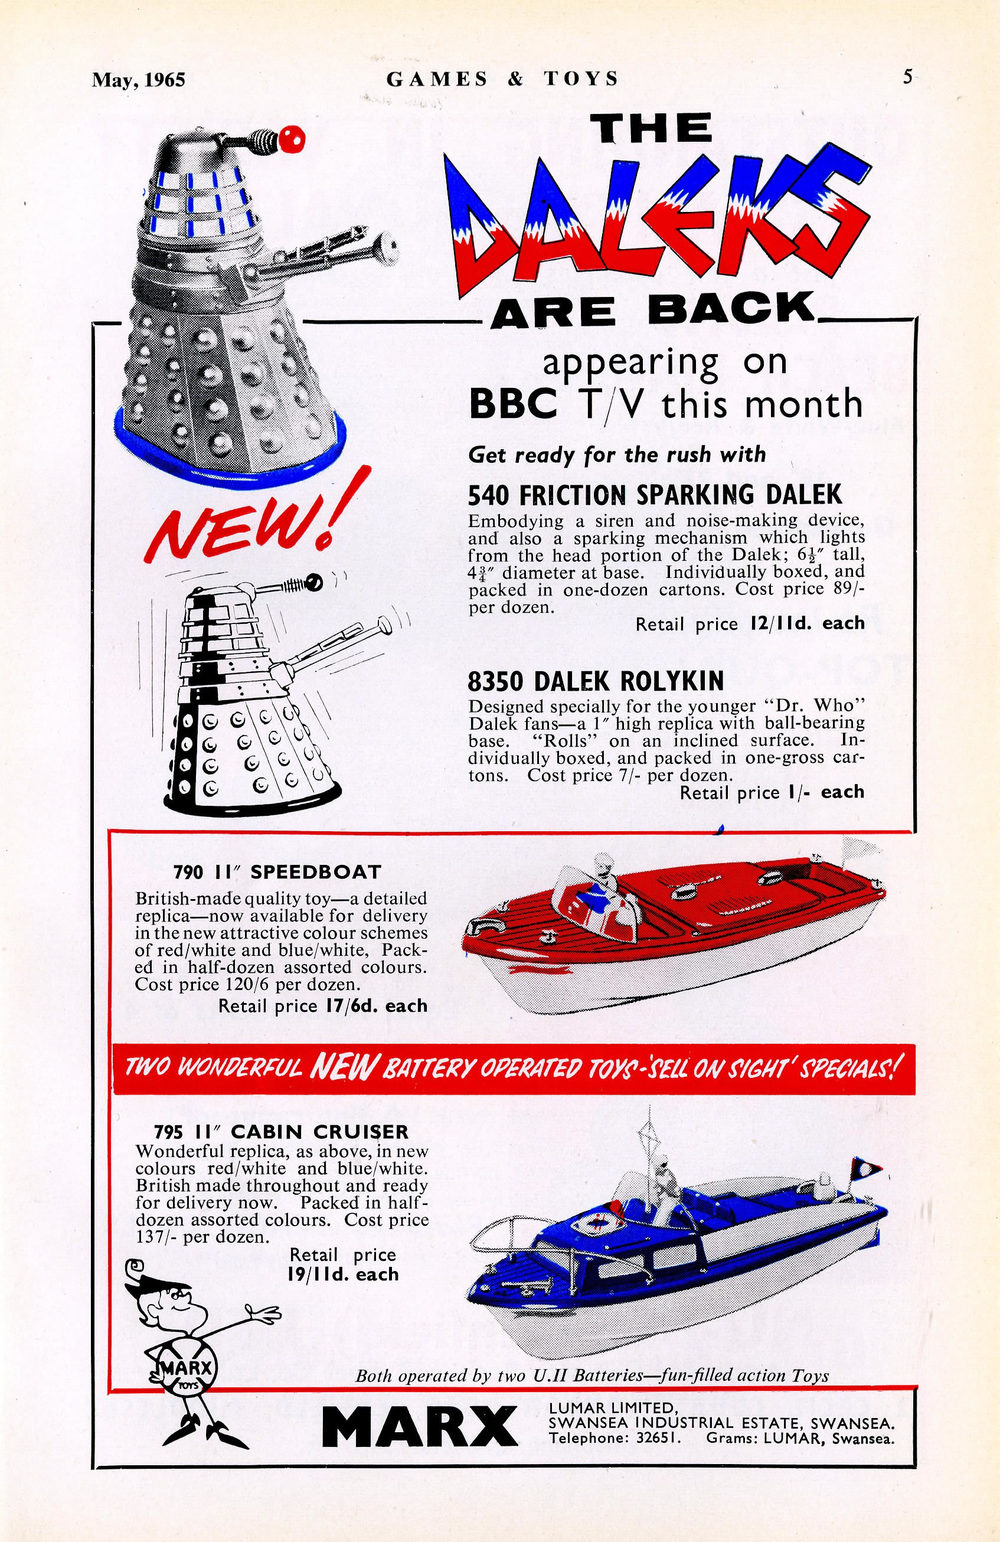 Games & Toys, May 1965, ad. for Louis Marx and Company Ltd. featuring friction-drive Daleks and Dalek Rolykins